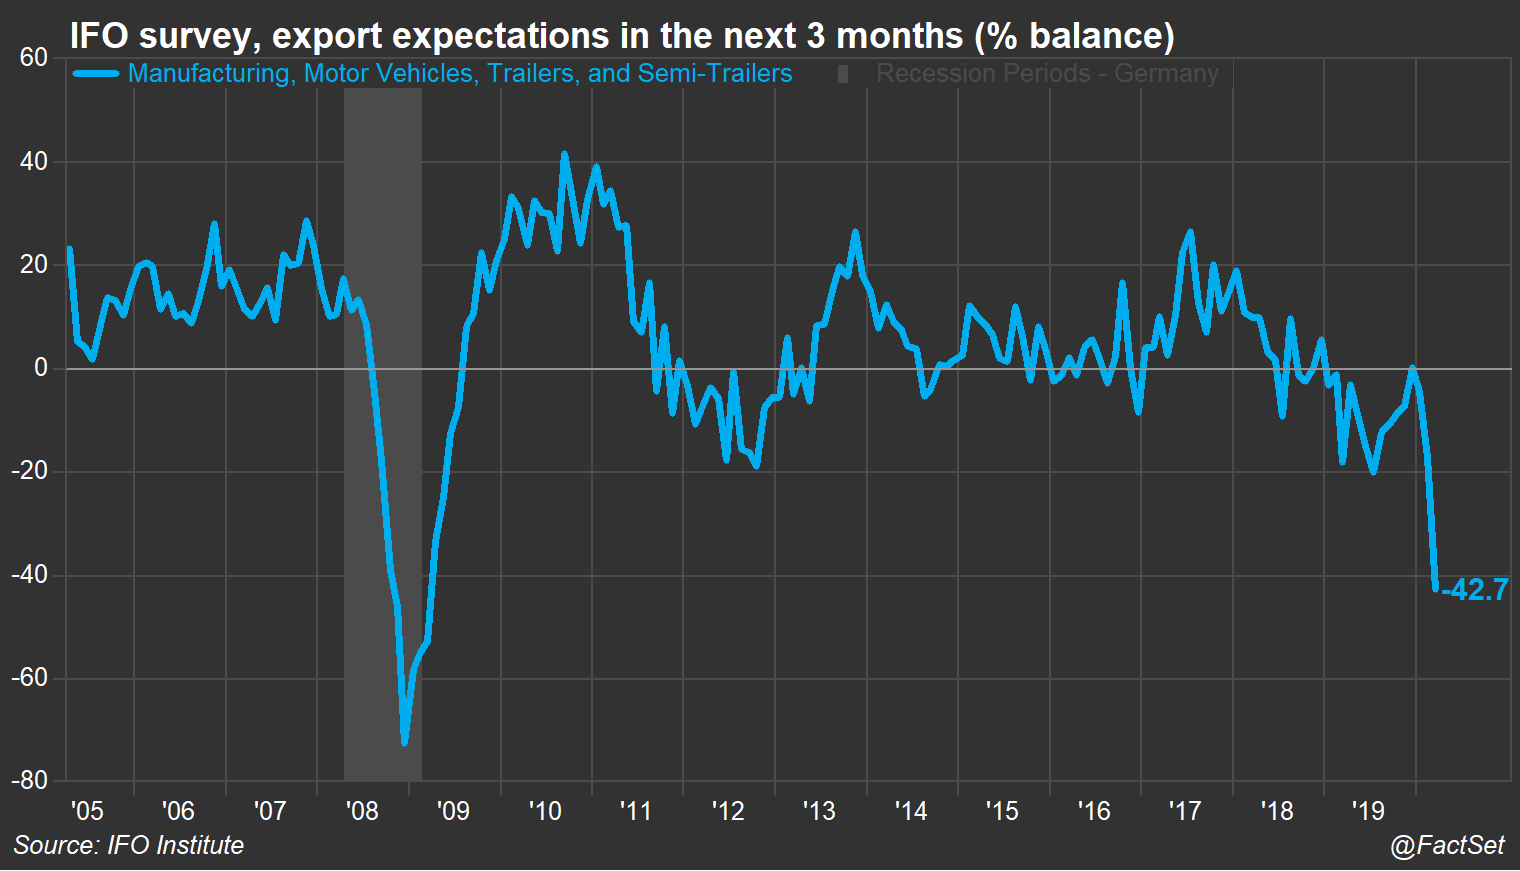 IFO auto industry 3 month export expectations